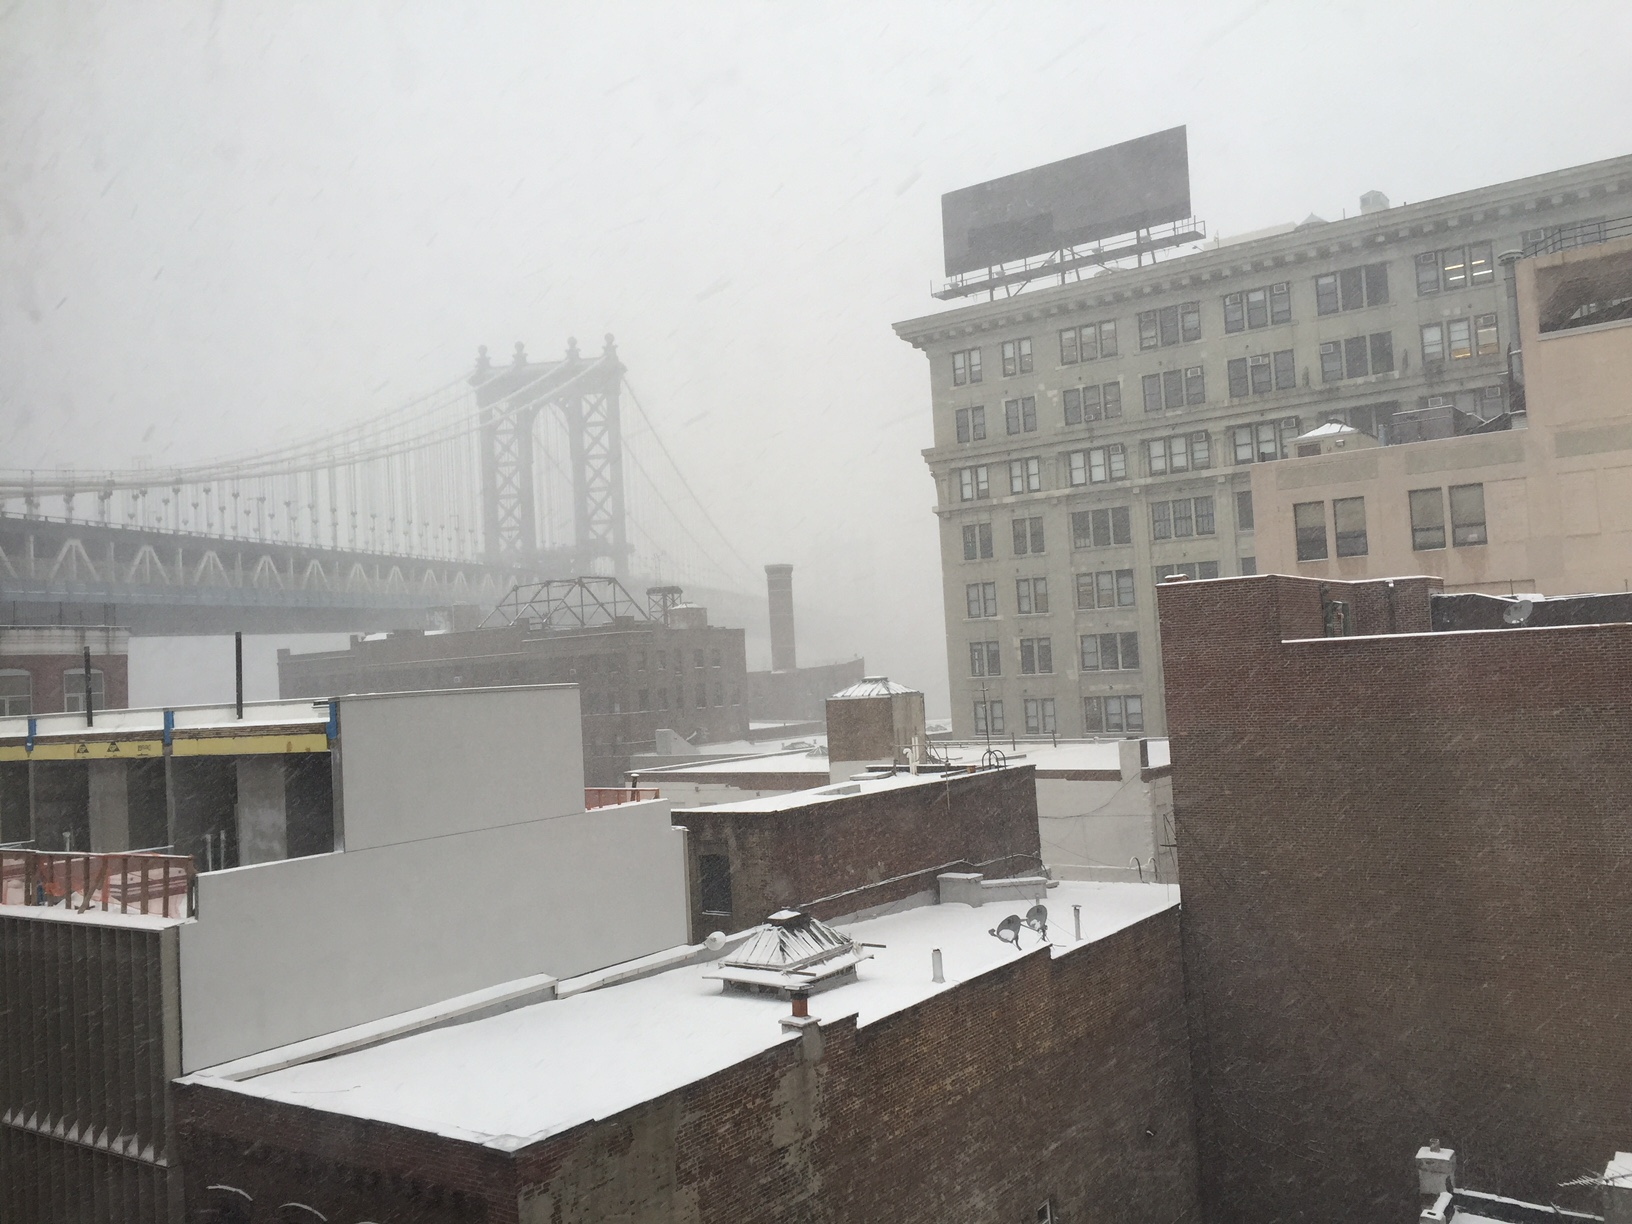 Are Banks Open After Inclement Weather From Winter Storm Juno?